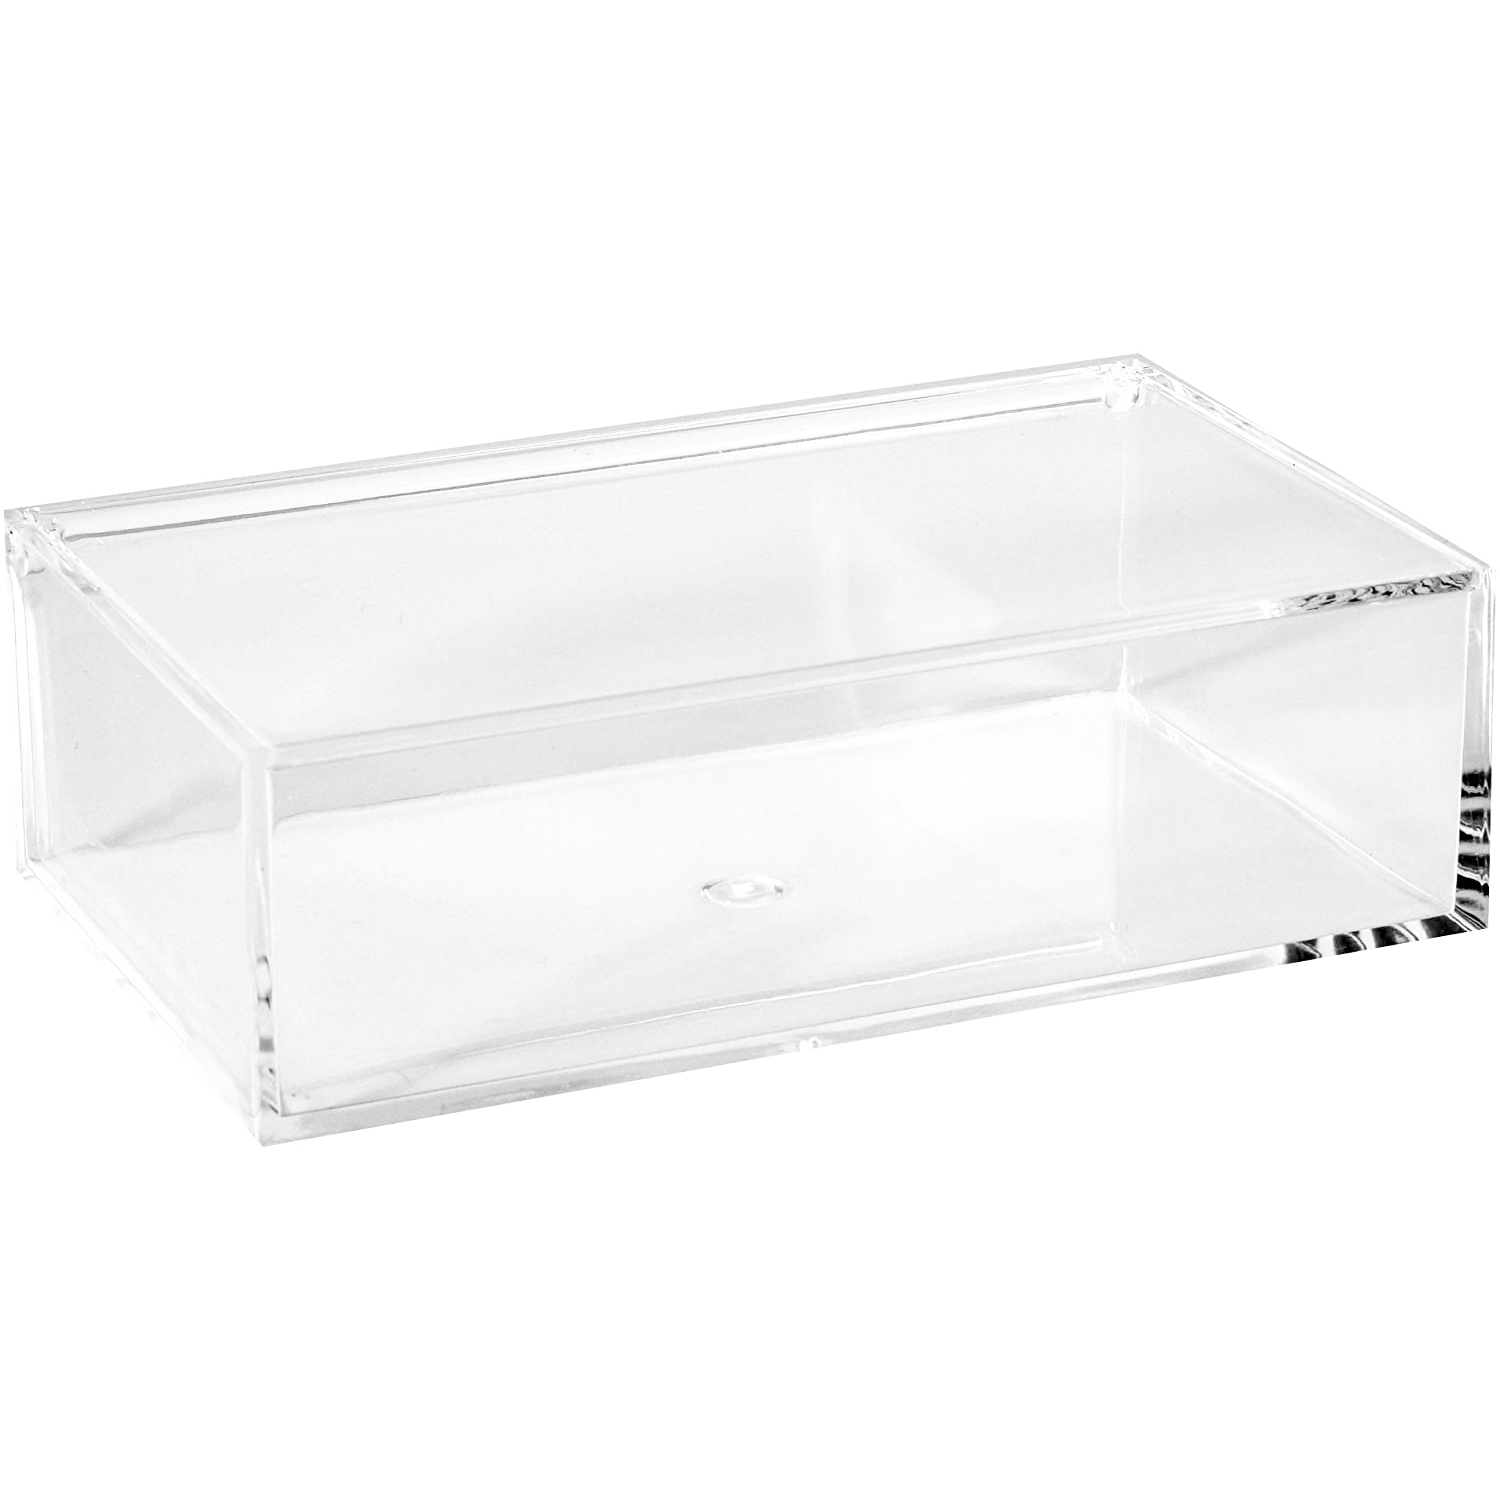 Clear Lucite Rectangular Storage Box